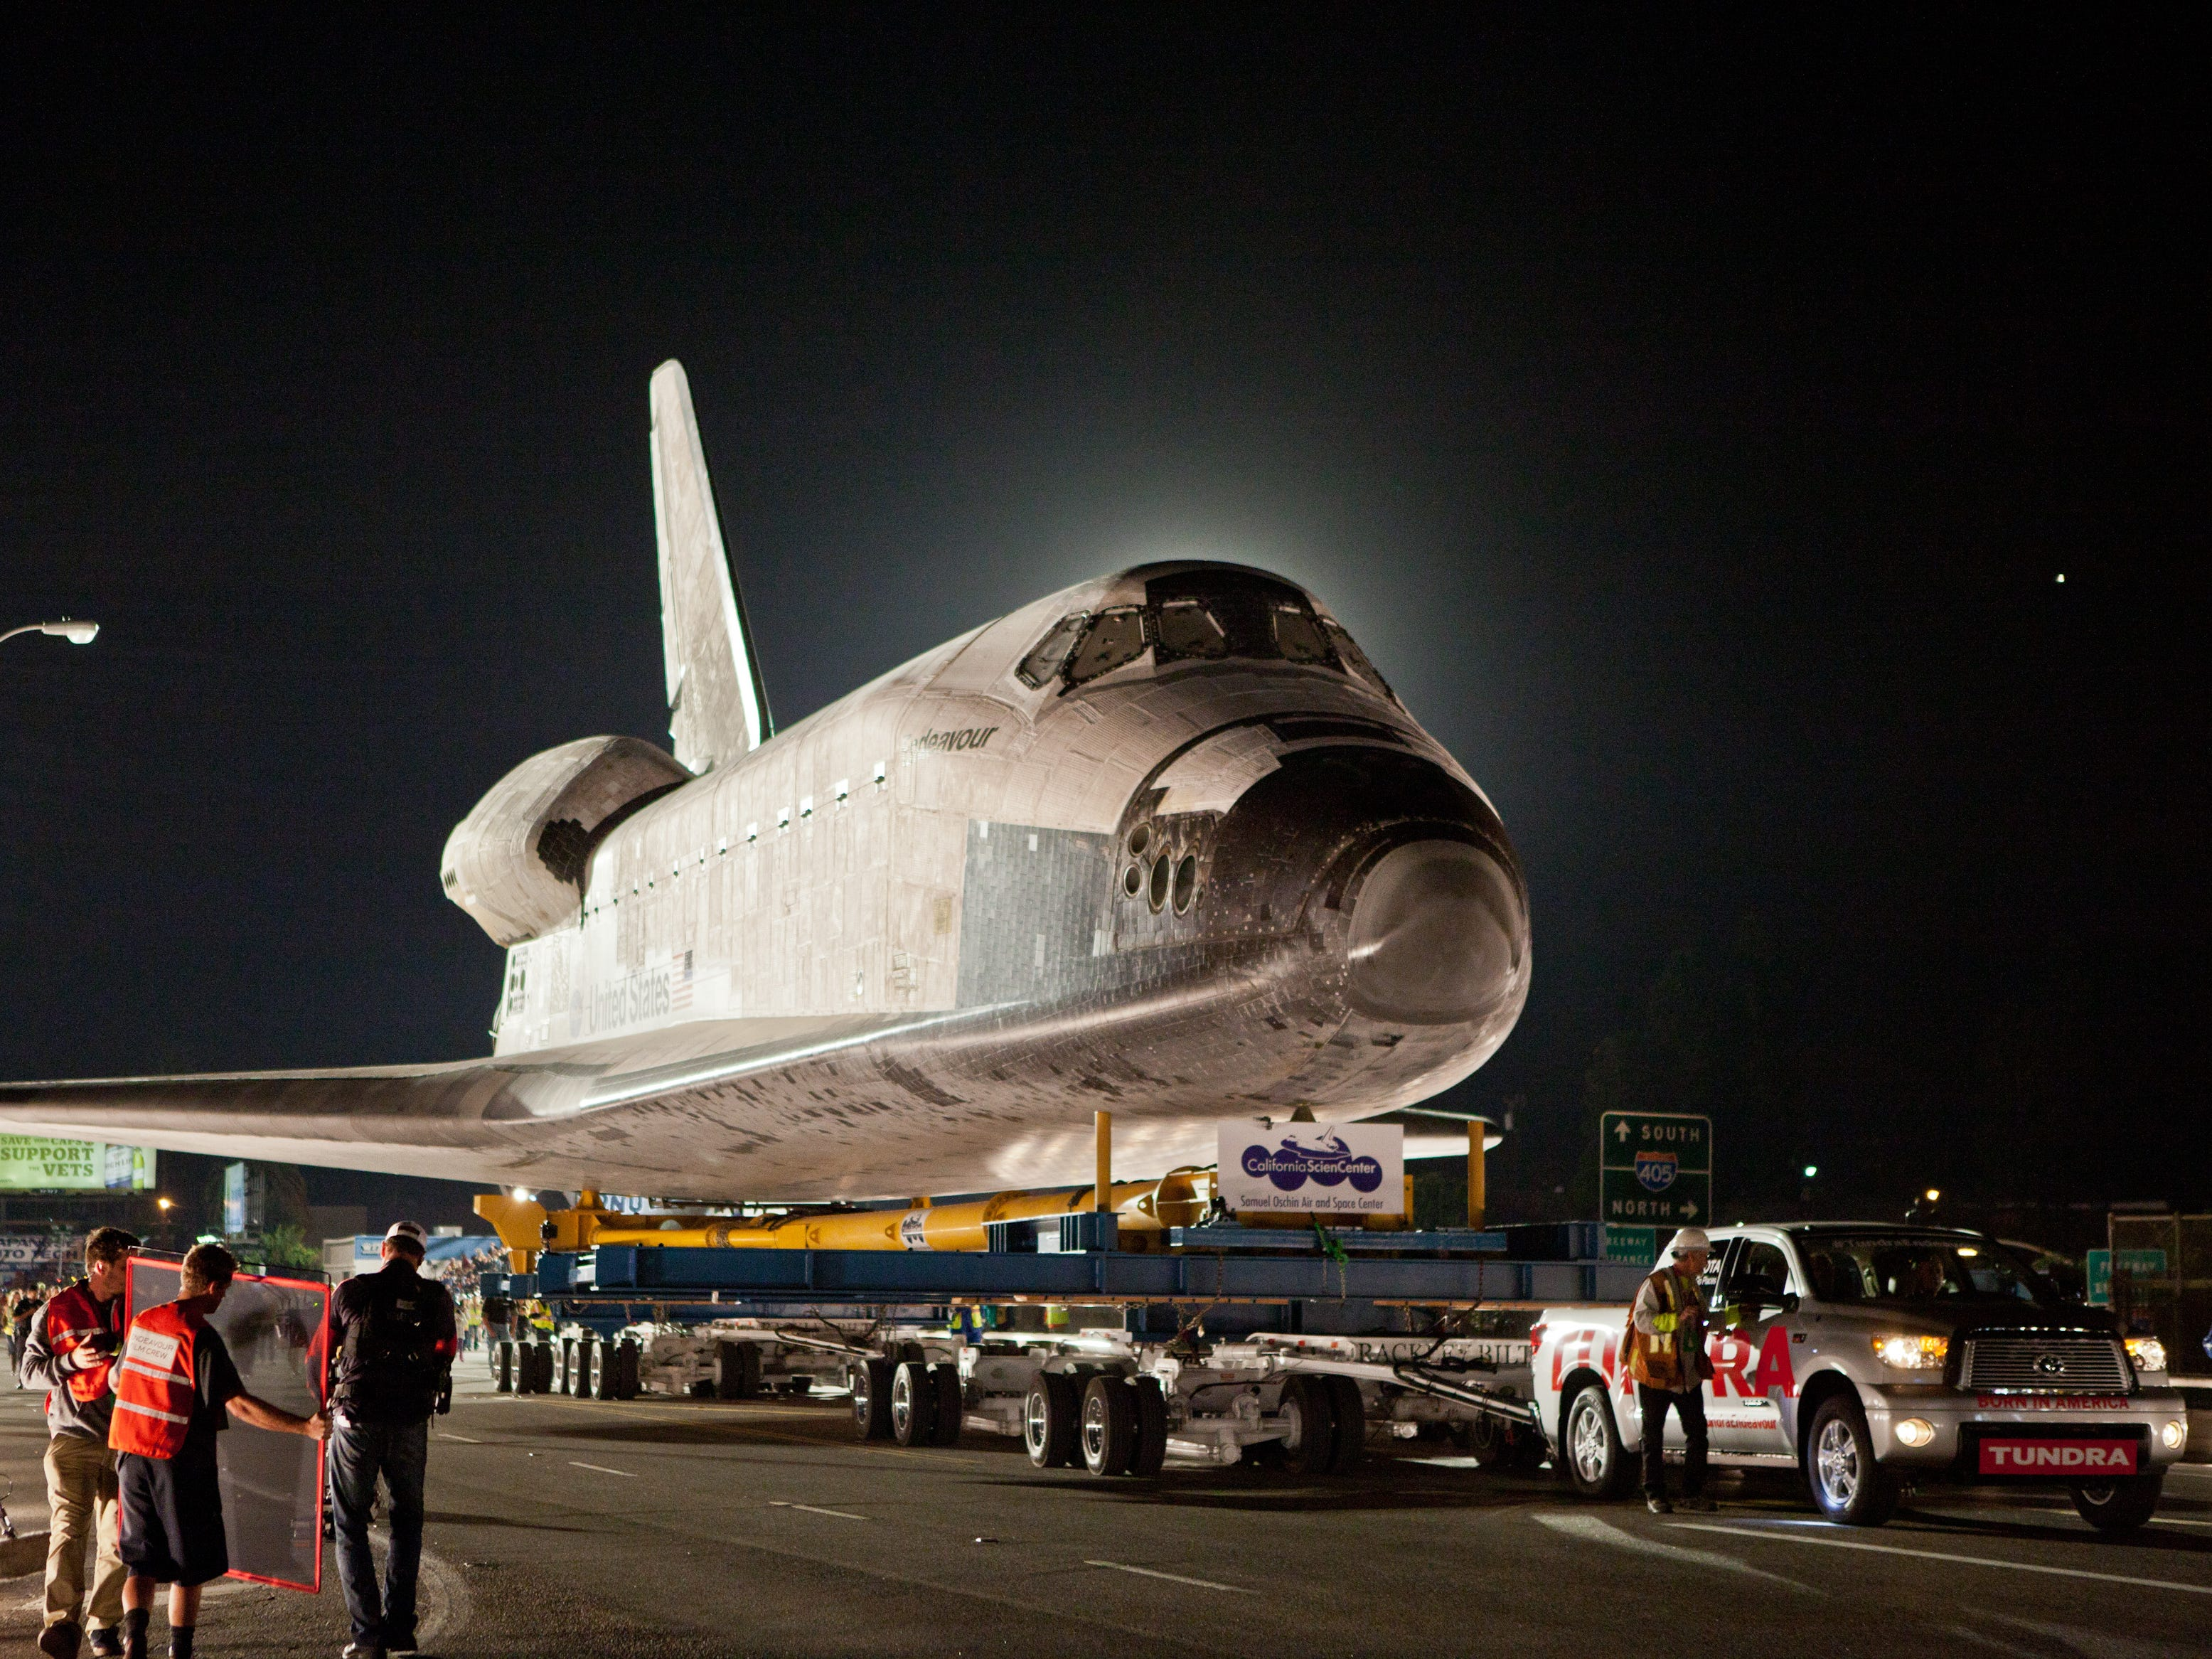 Tundra pulling the Space Shuttle in 2014.